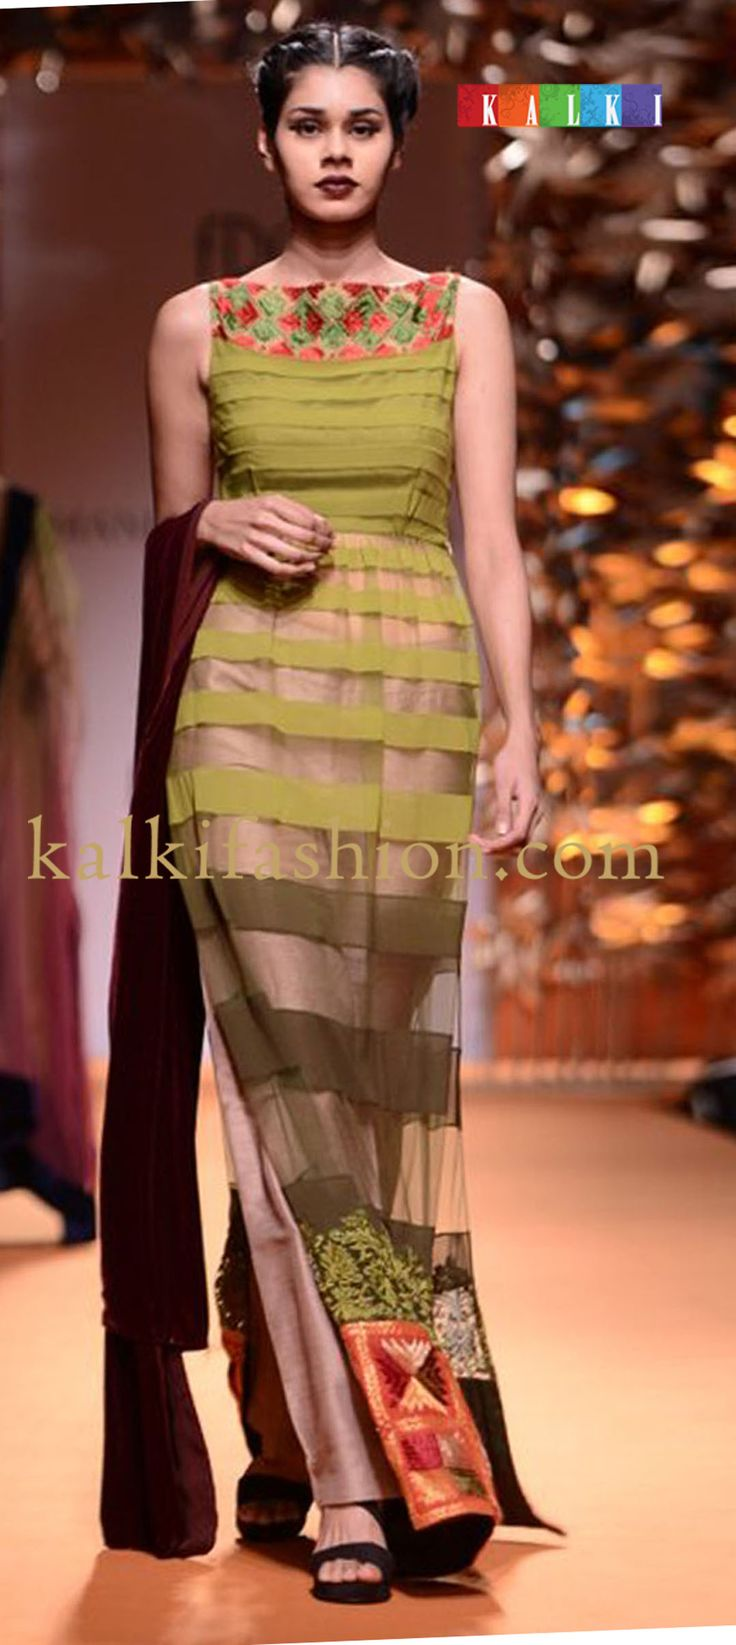 http://www.kalkifashion.com/designers/manish-malhotra.html  embroidered-yoke-olive-green-anarkali-suit